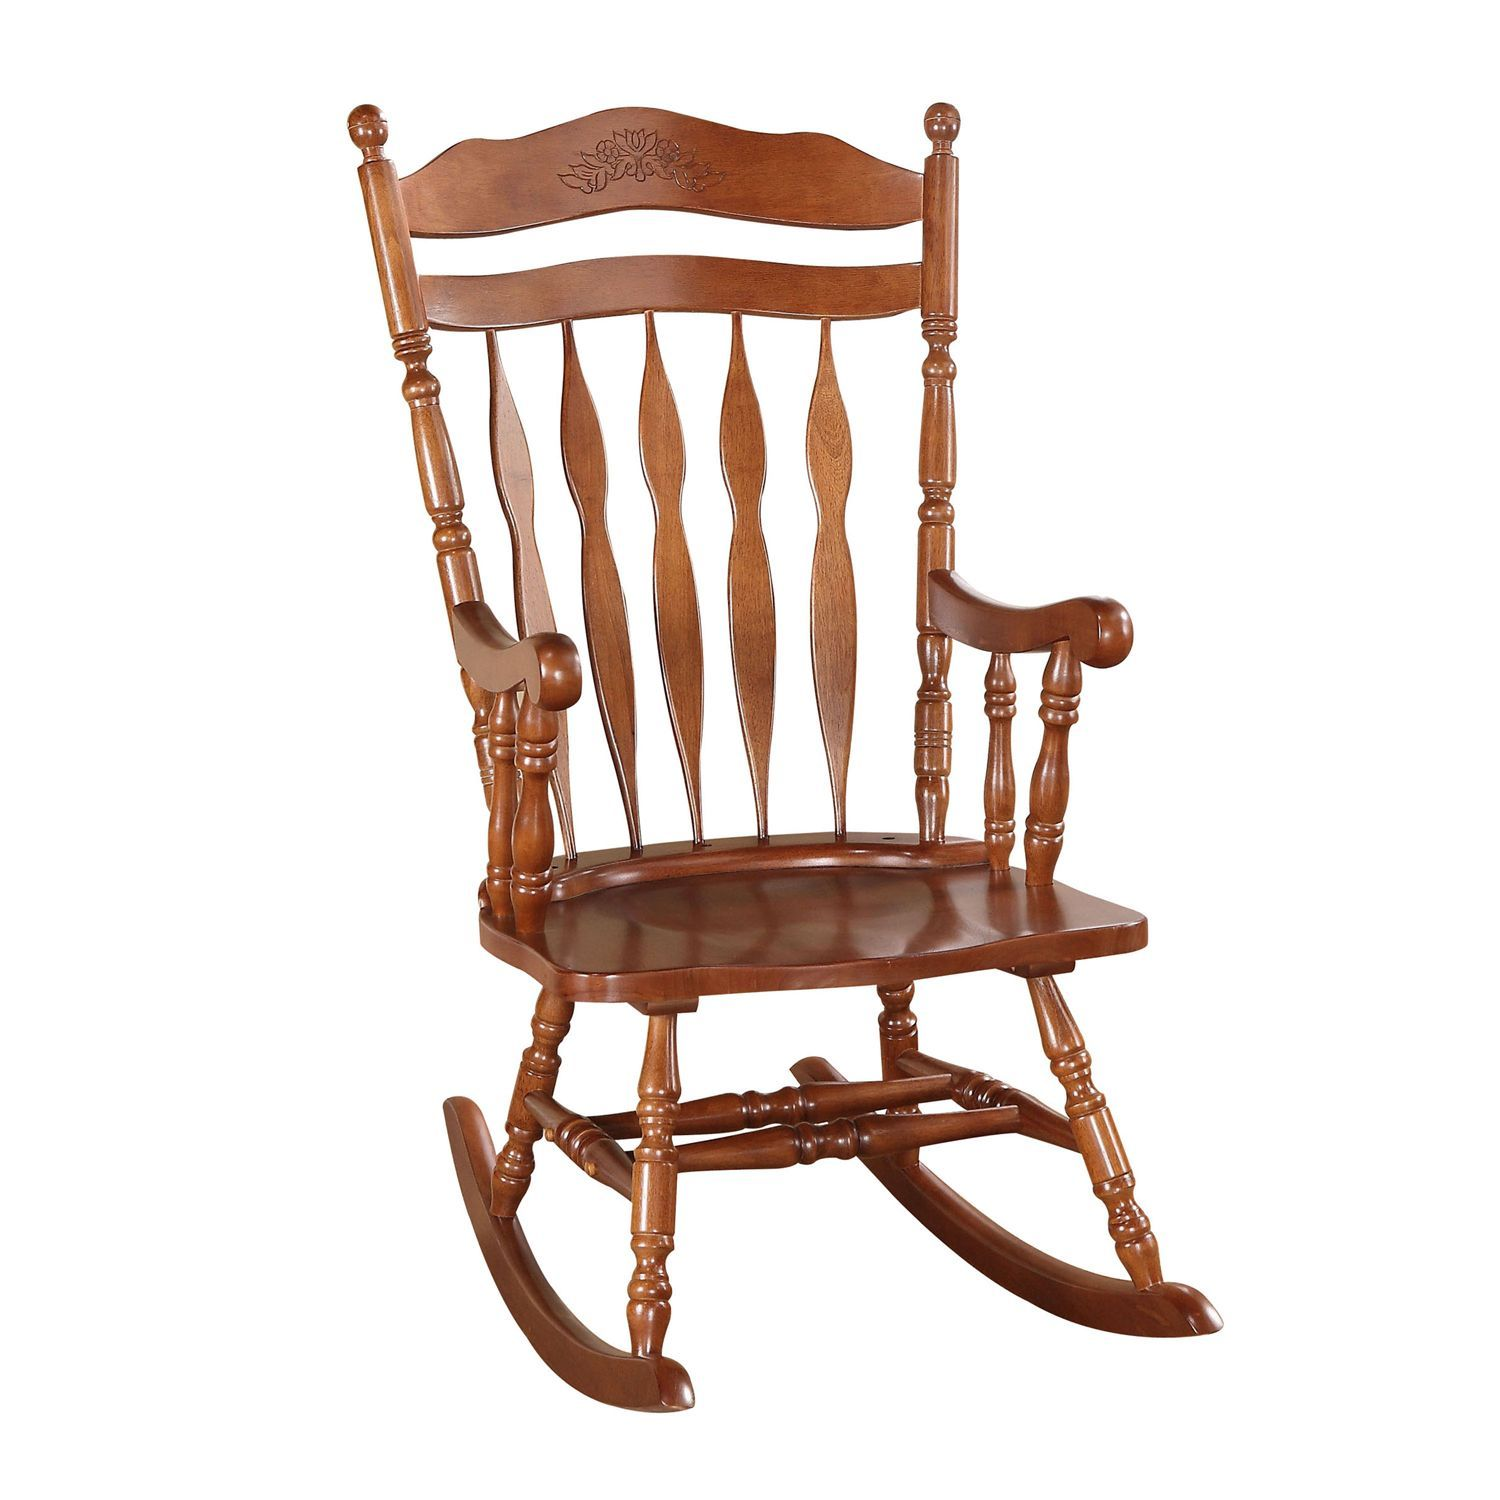 Dark Walnut Rocking Chair Rocking chair, Chair, Wooden